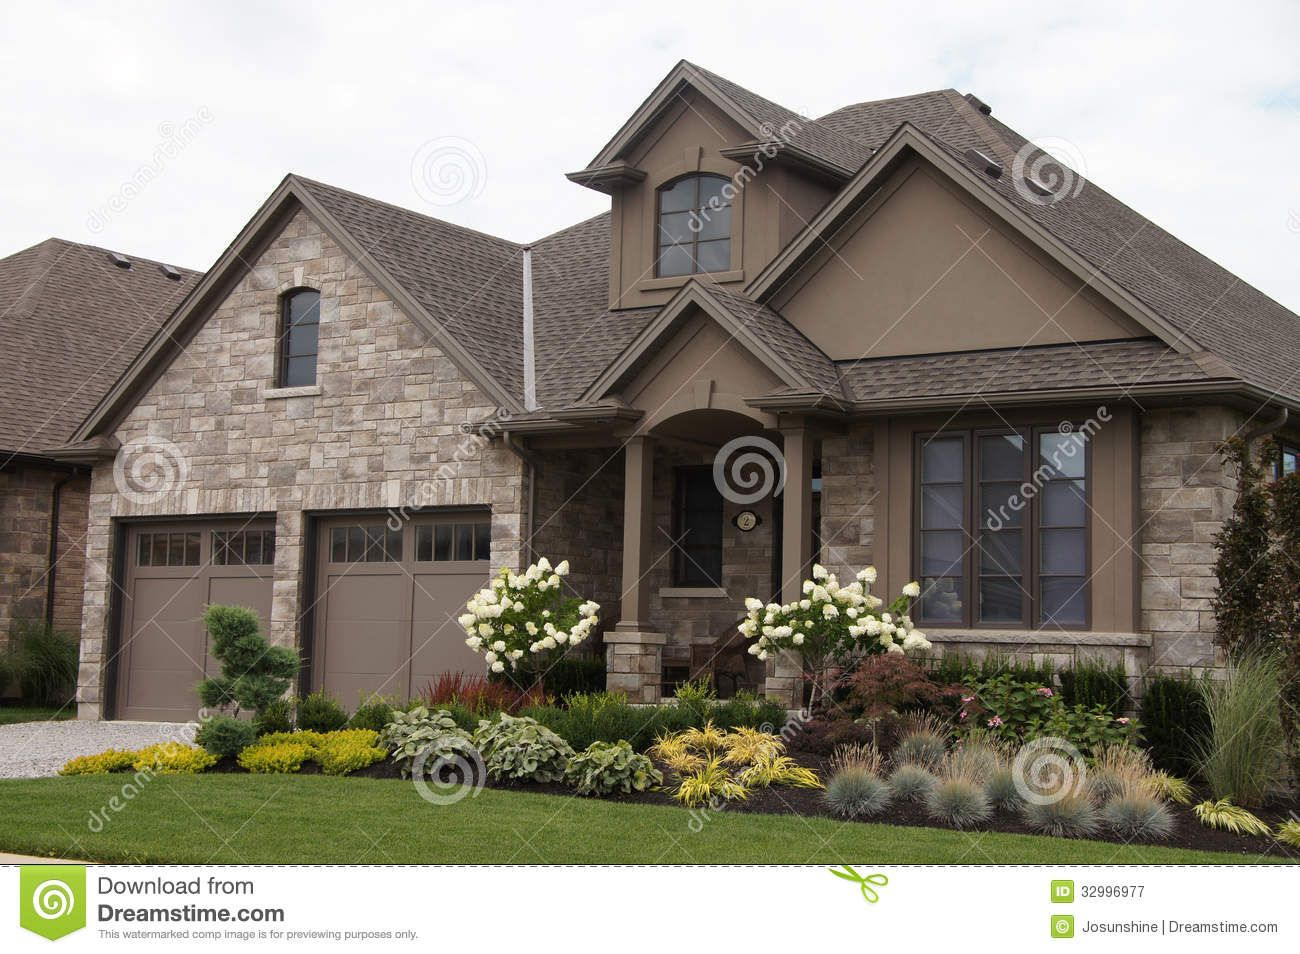 Stucco homes stucco stone house pretty garden royalty for Stone and stucco home designs